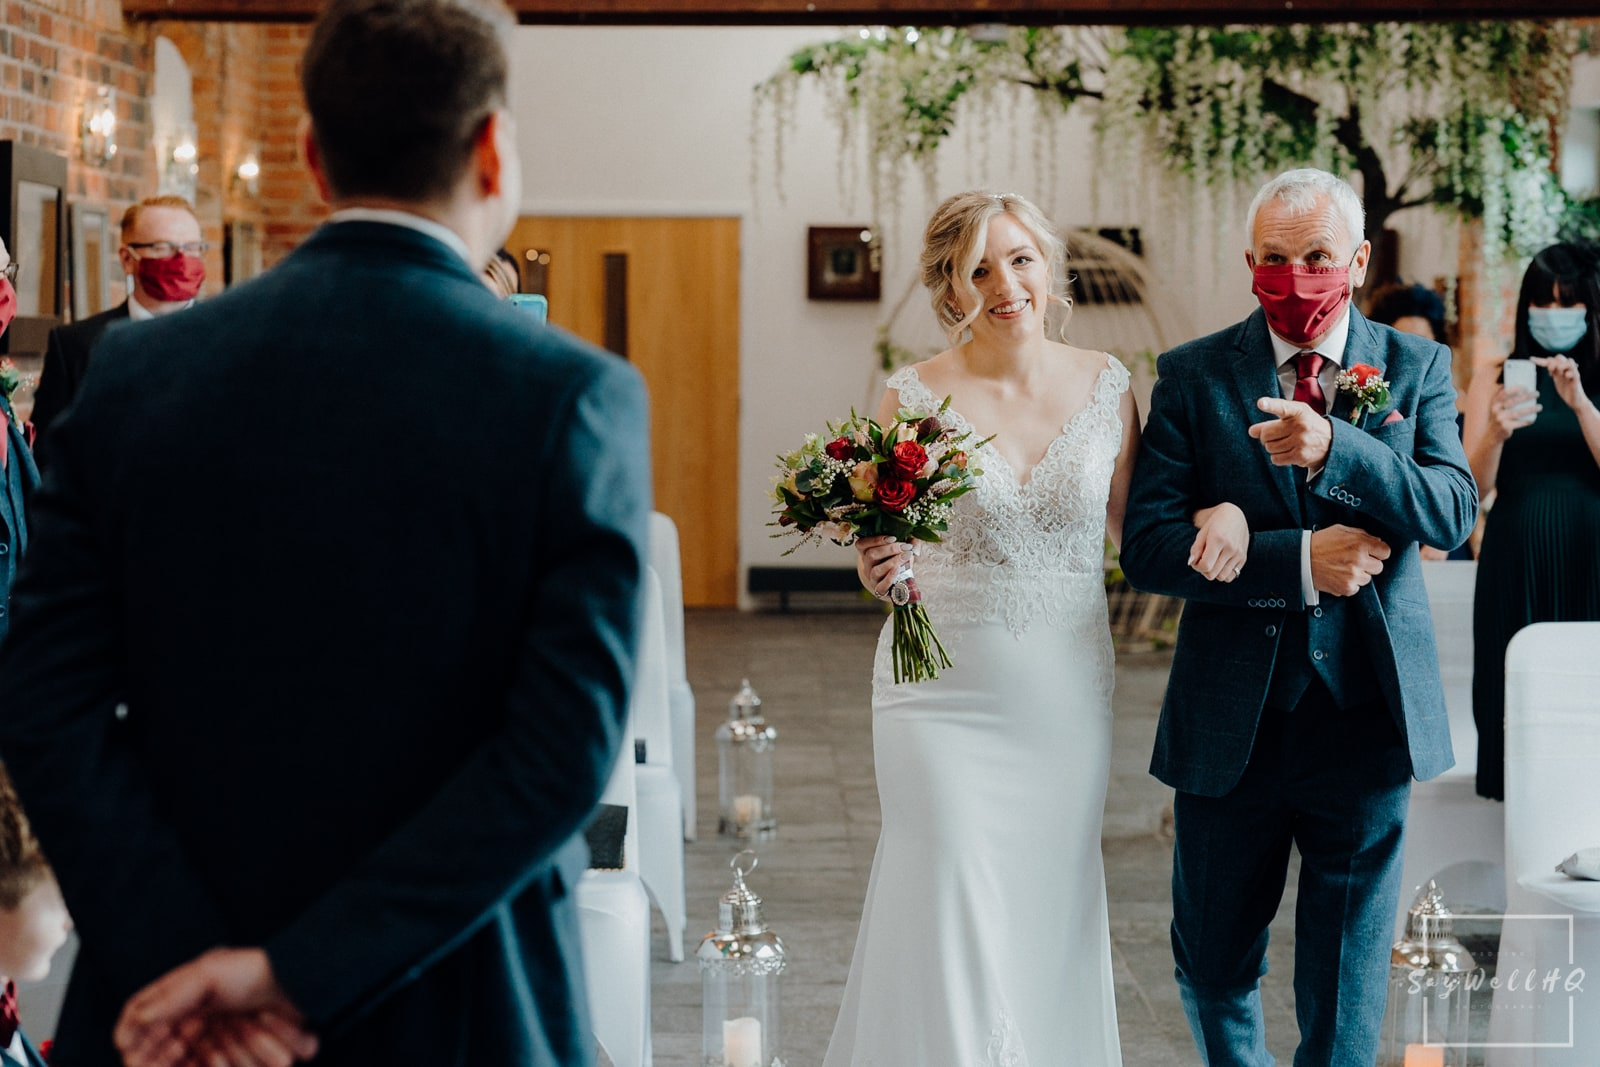 Goosedale Wedding Photography + Goosedale Wedding Photographer + bride and her father walking down the aisle at a Goosedale wedding